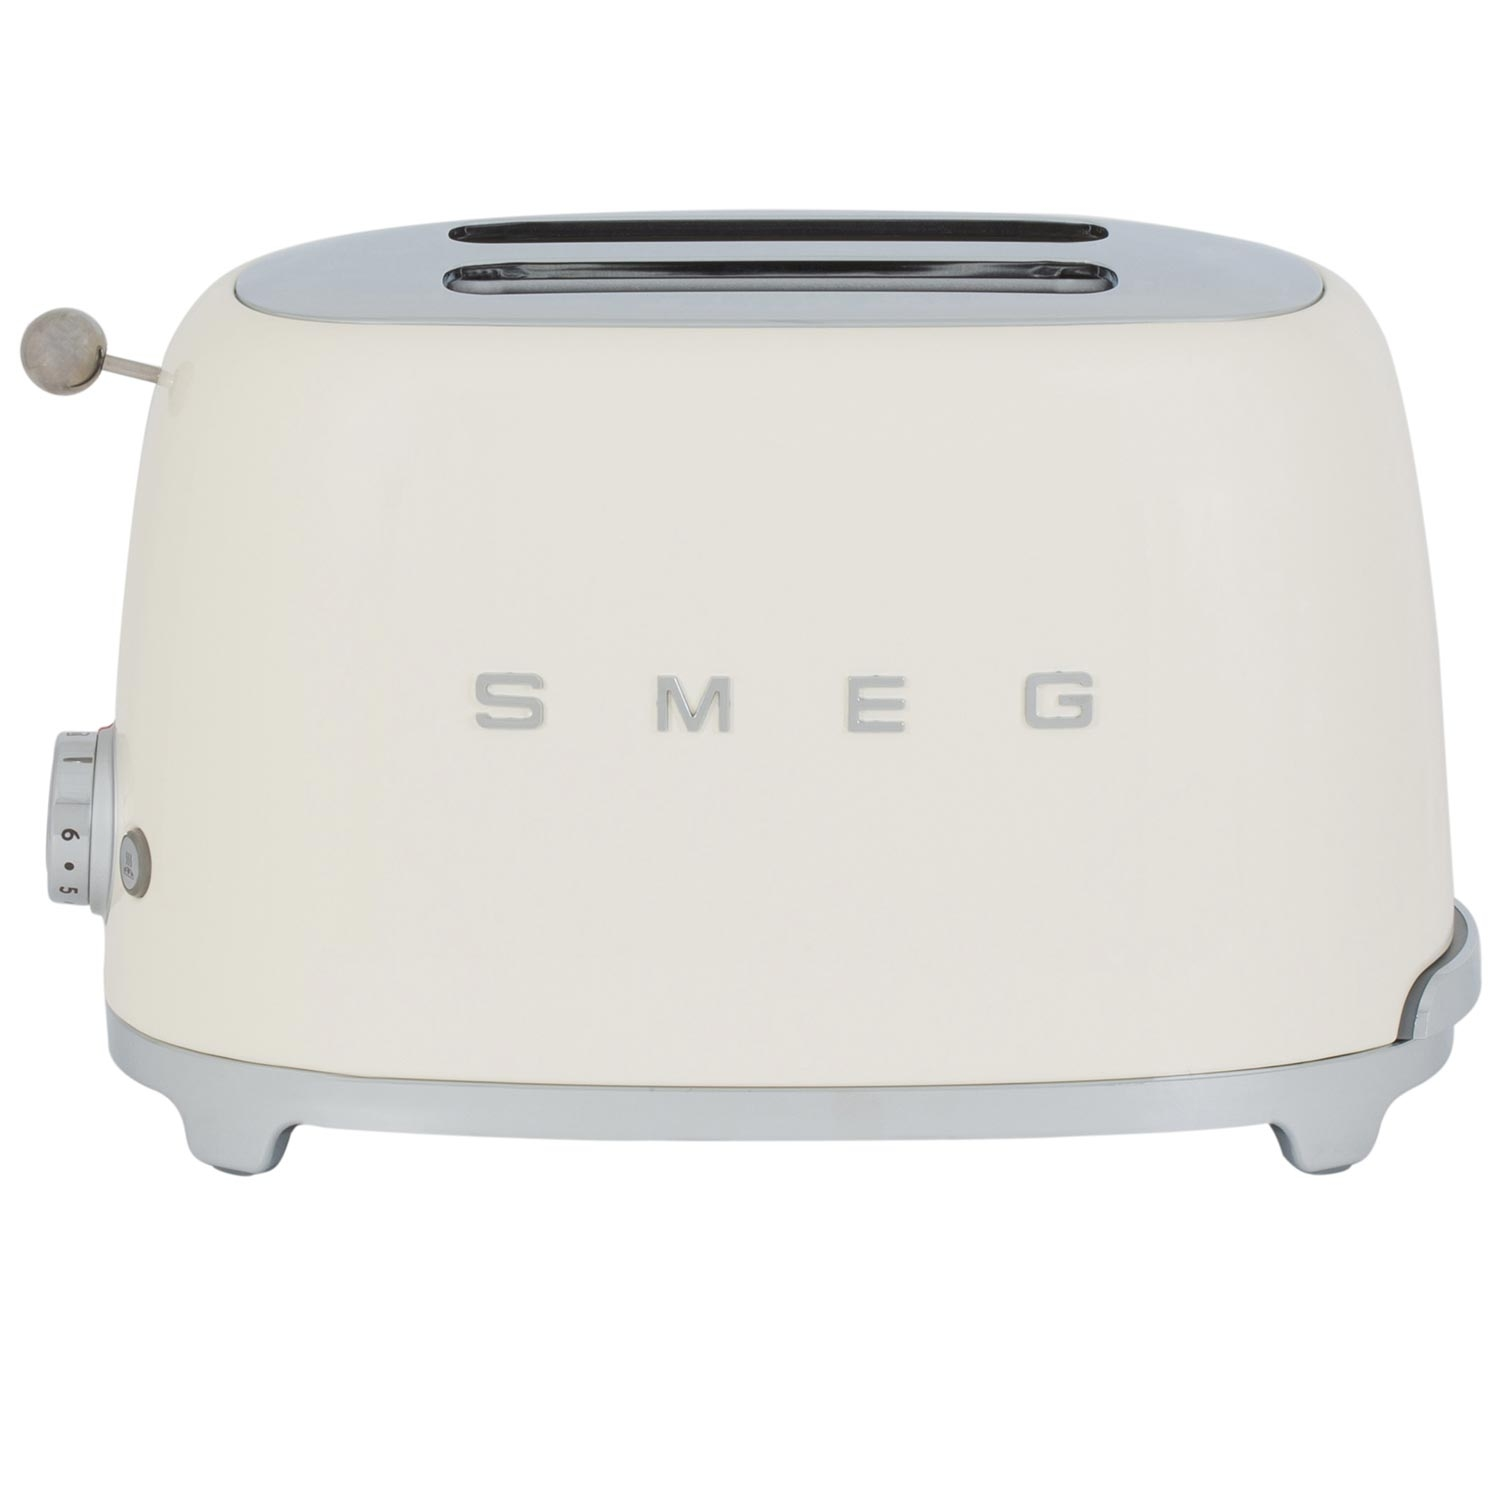 Smeg 2 Slice Toaster - Cream - 0